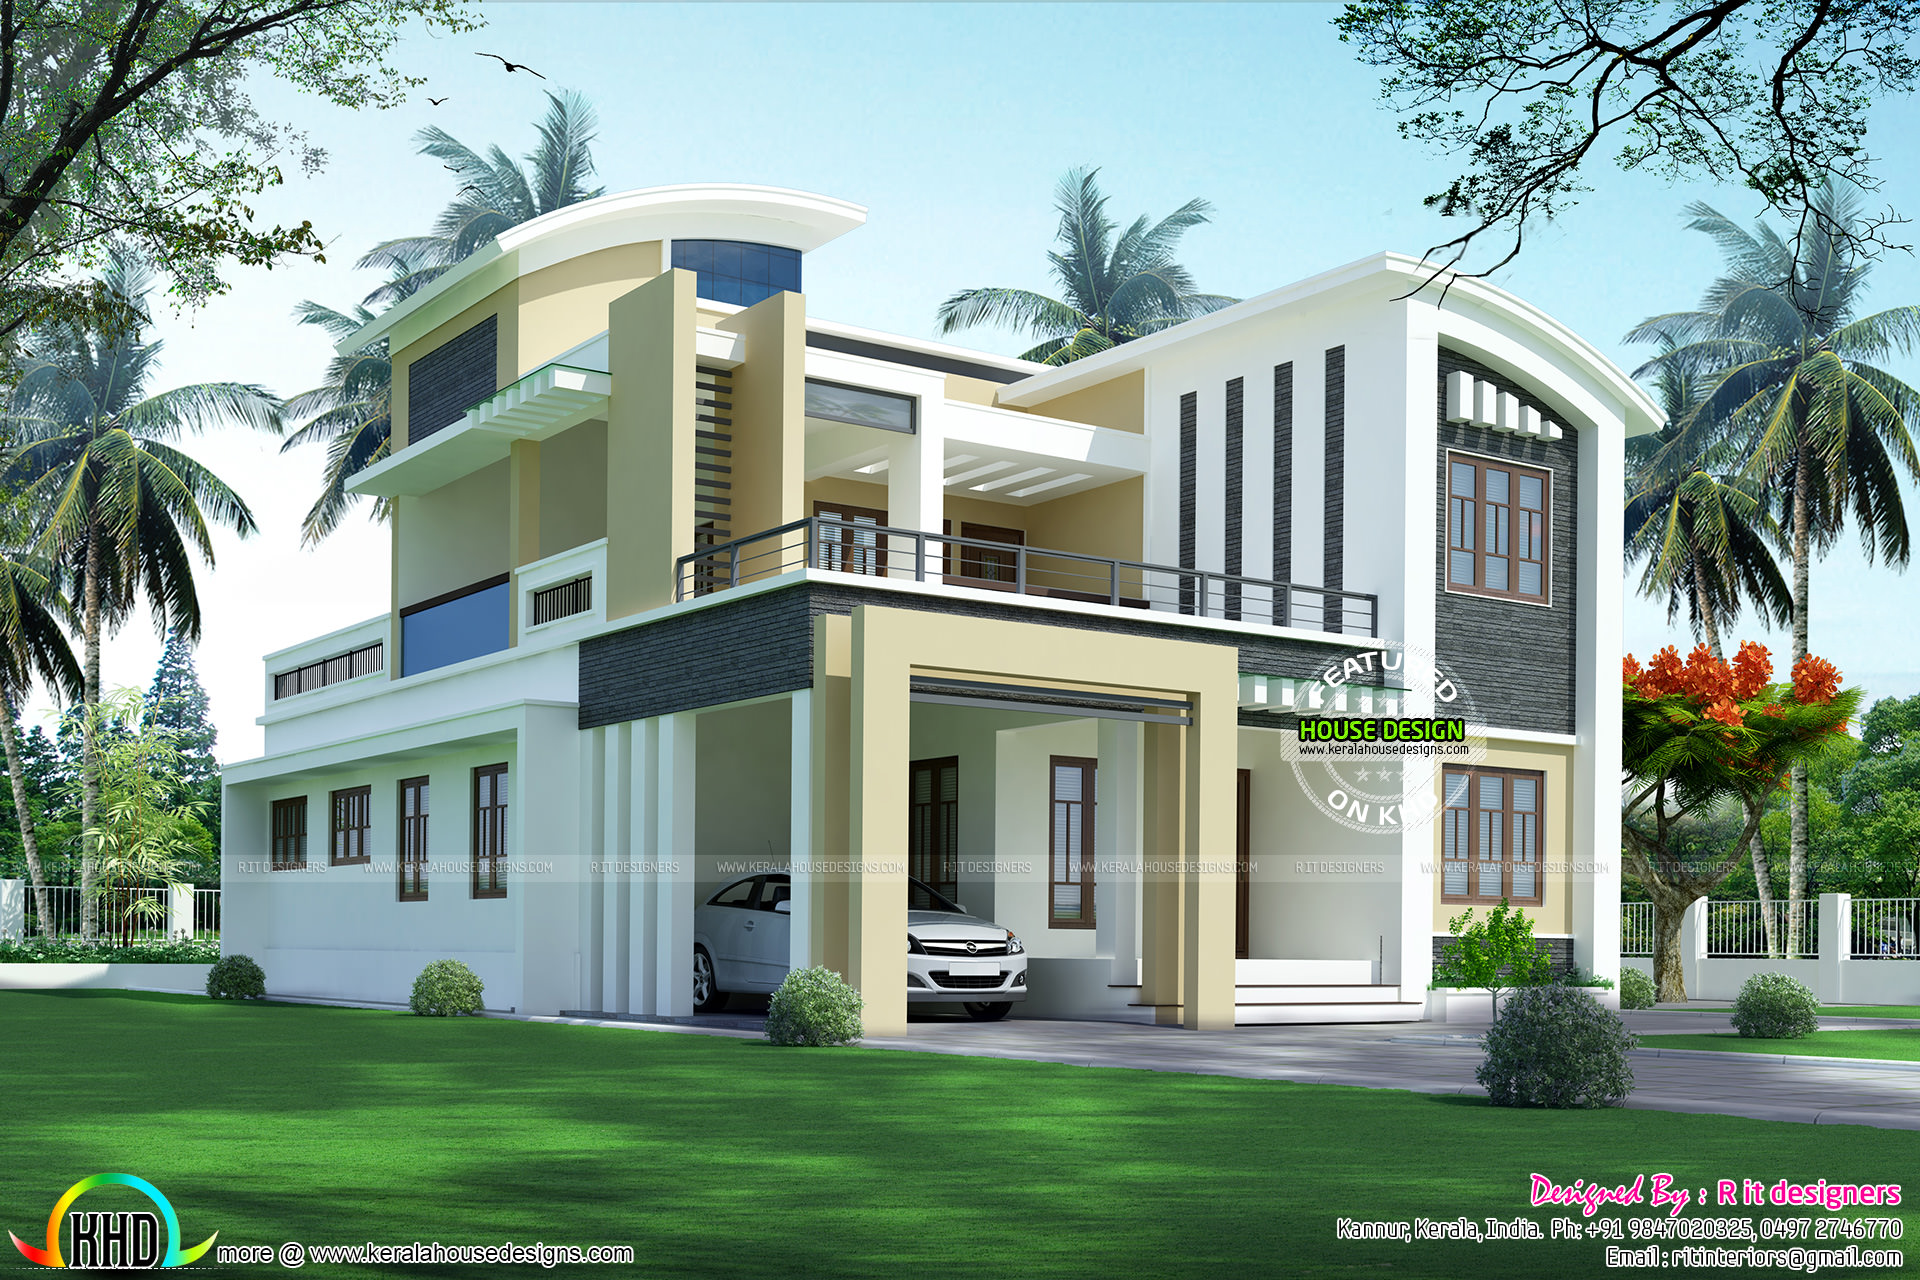 3108 sq ft modern house kerala home design and floor plans for Ground floor modern house design